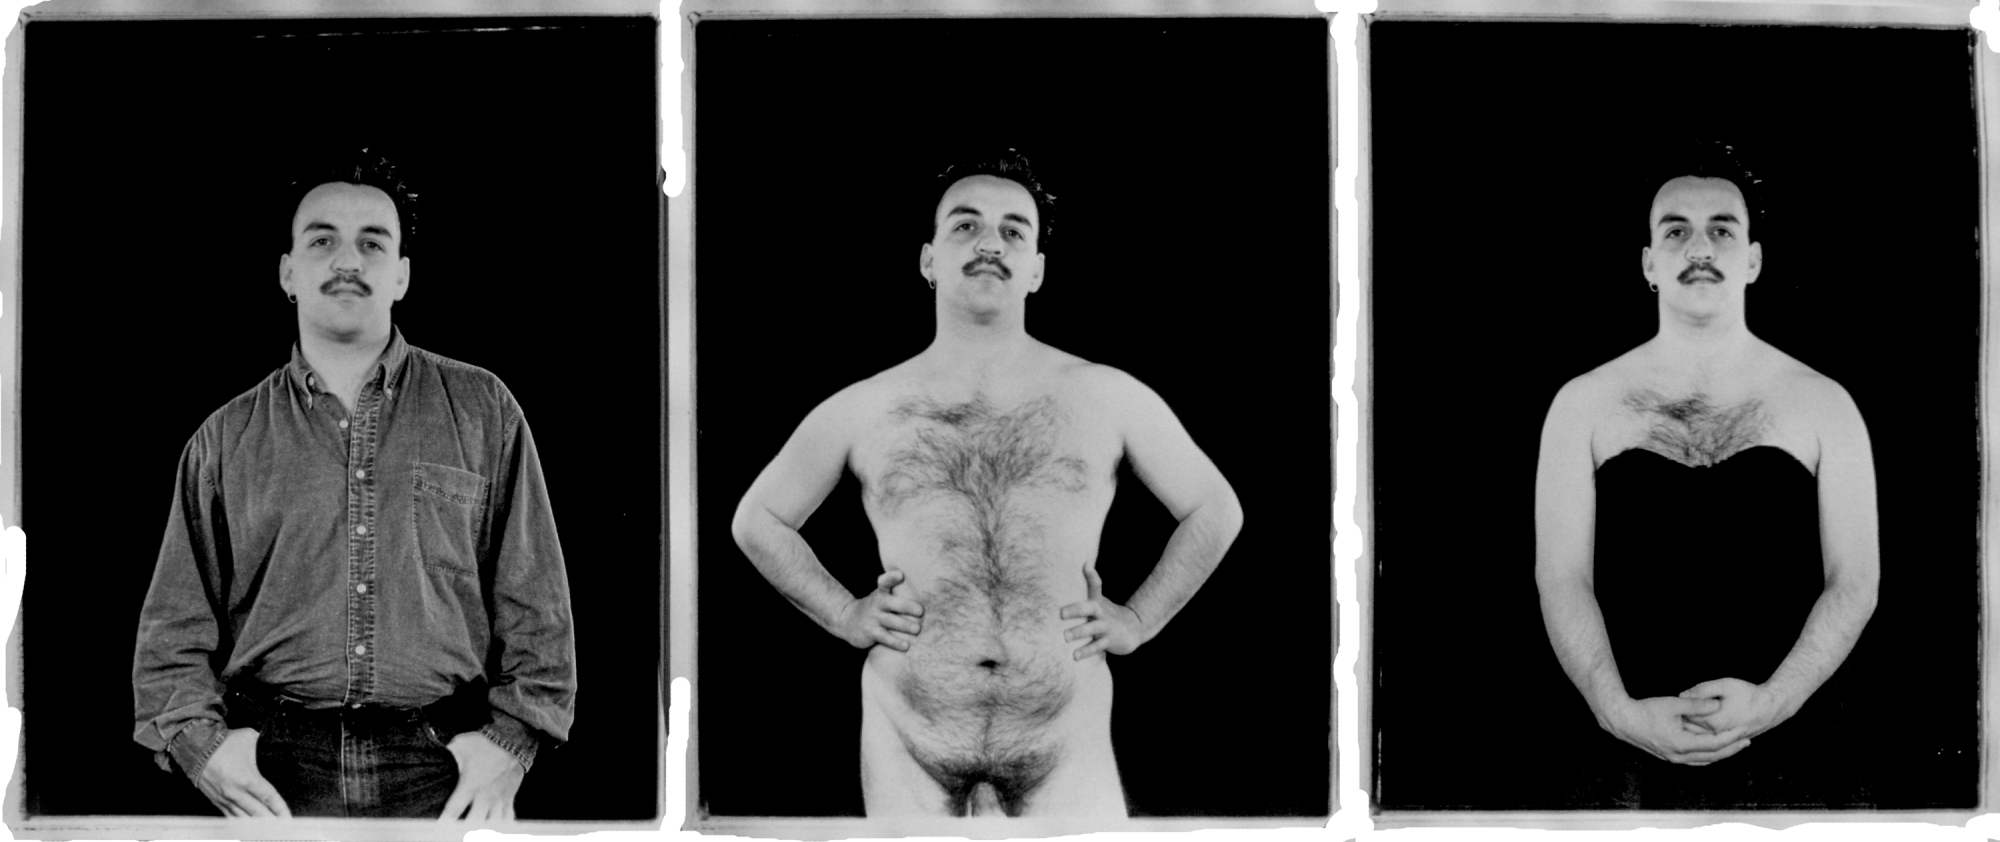 Laura Aguilar, Clothed Unclothed 20, 1992.